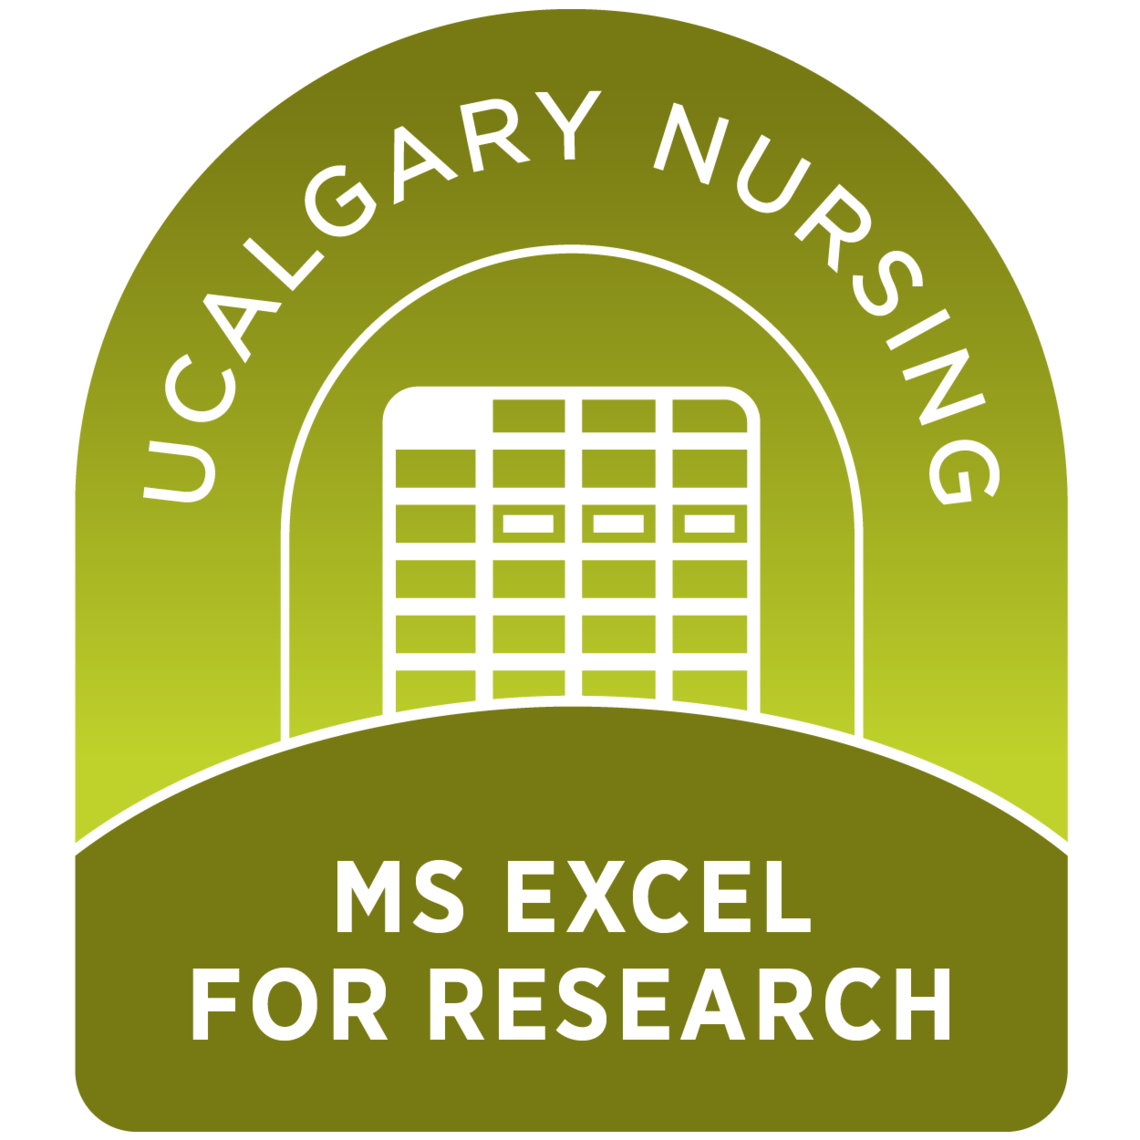 MS Excel for Research